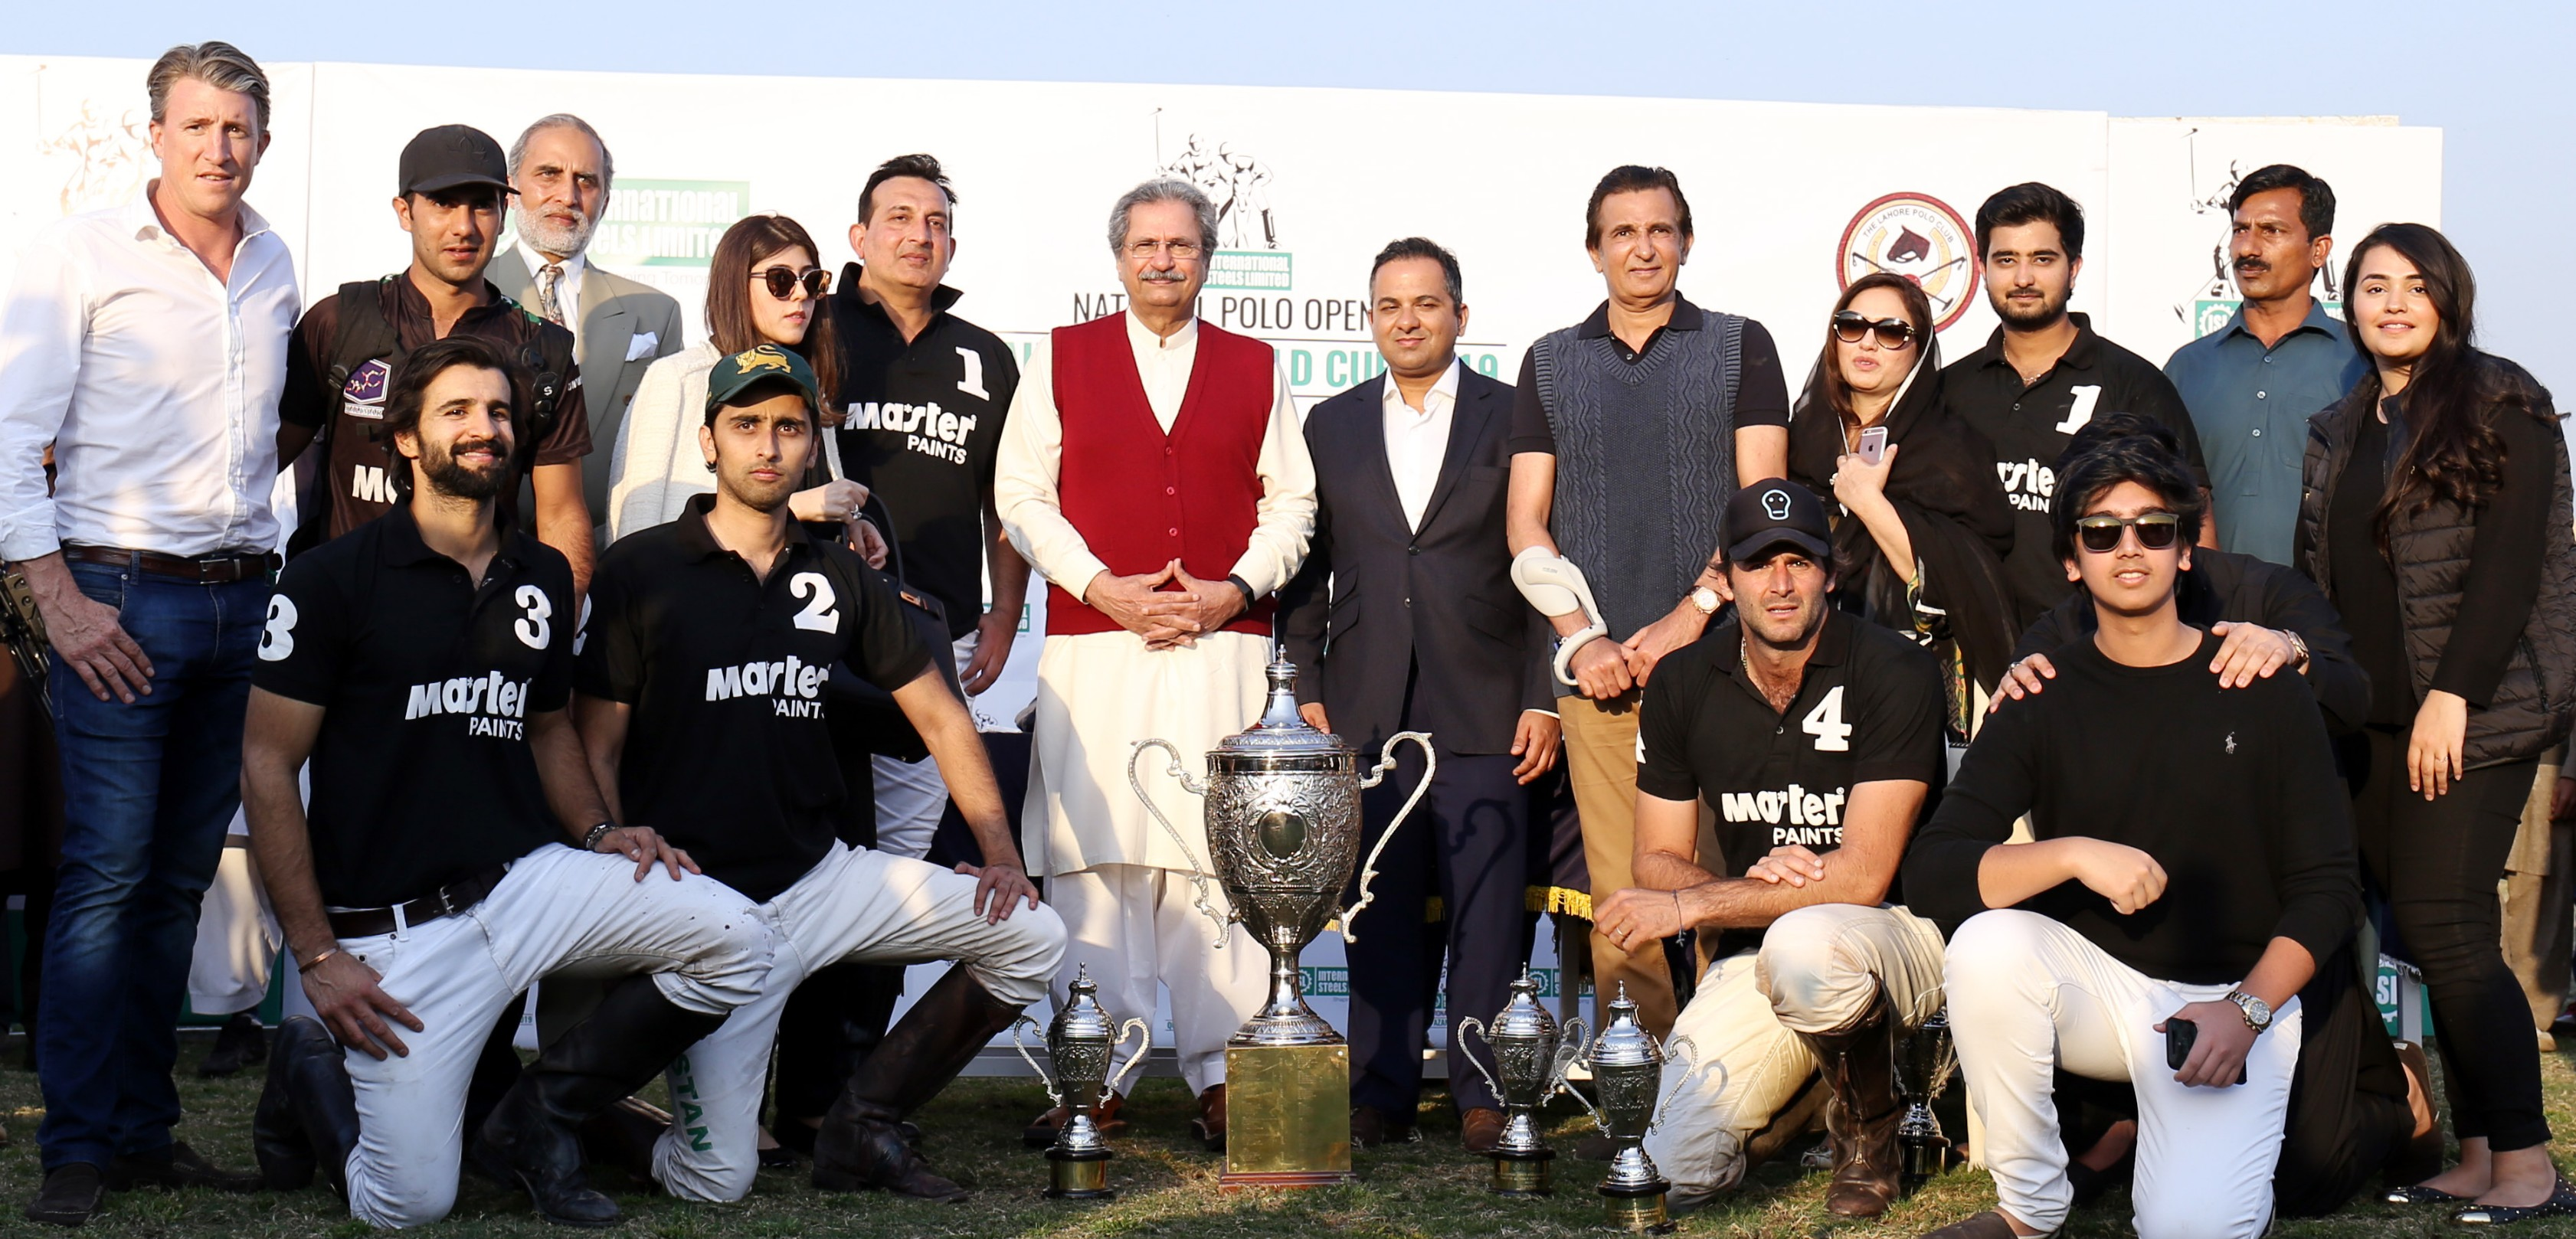 Quaid-e-Azam Gold Cup '19